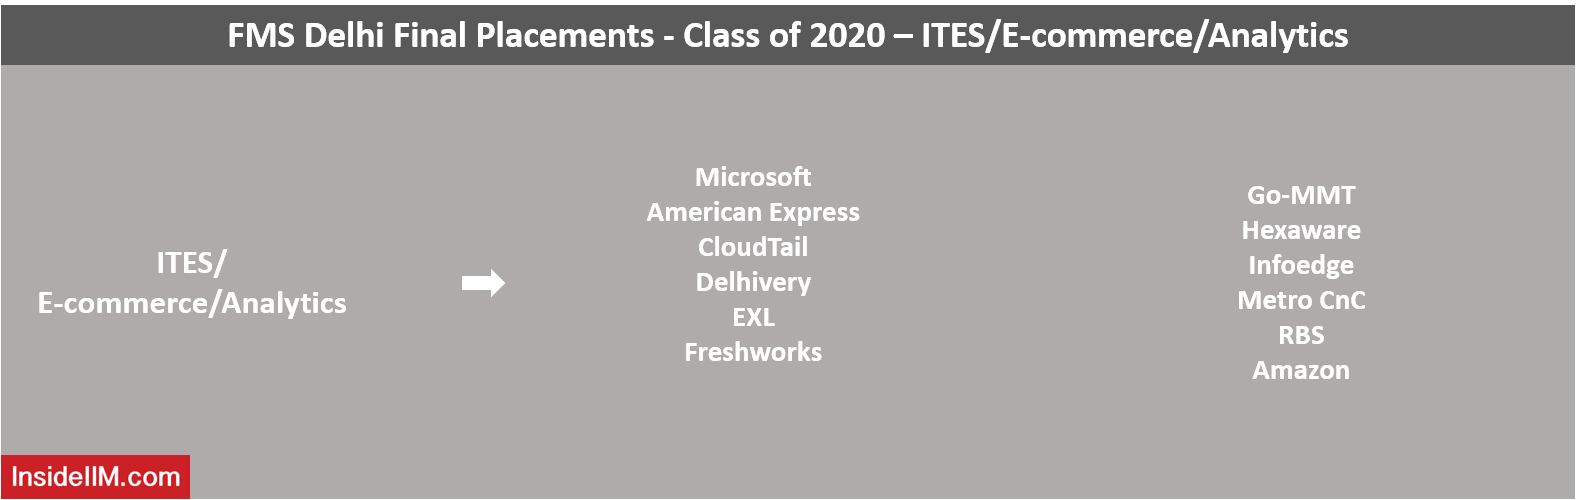 FMS Final Placements 2020 - Top IT/ITES/Analytics/E-Commerce Recruiters